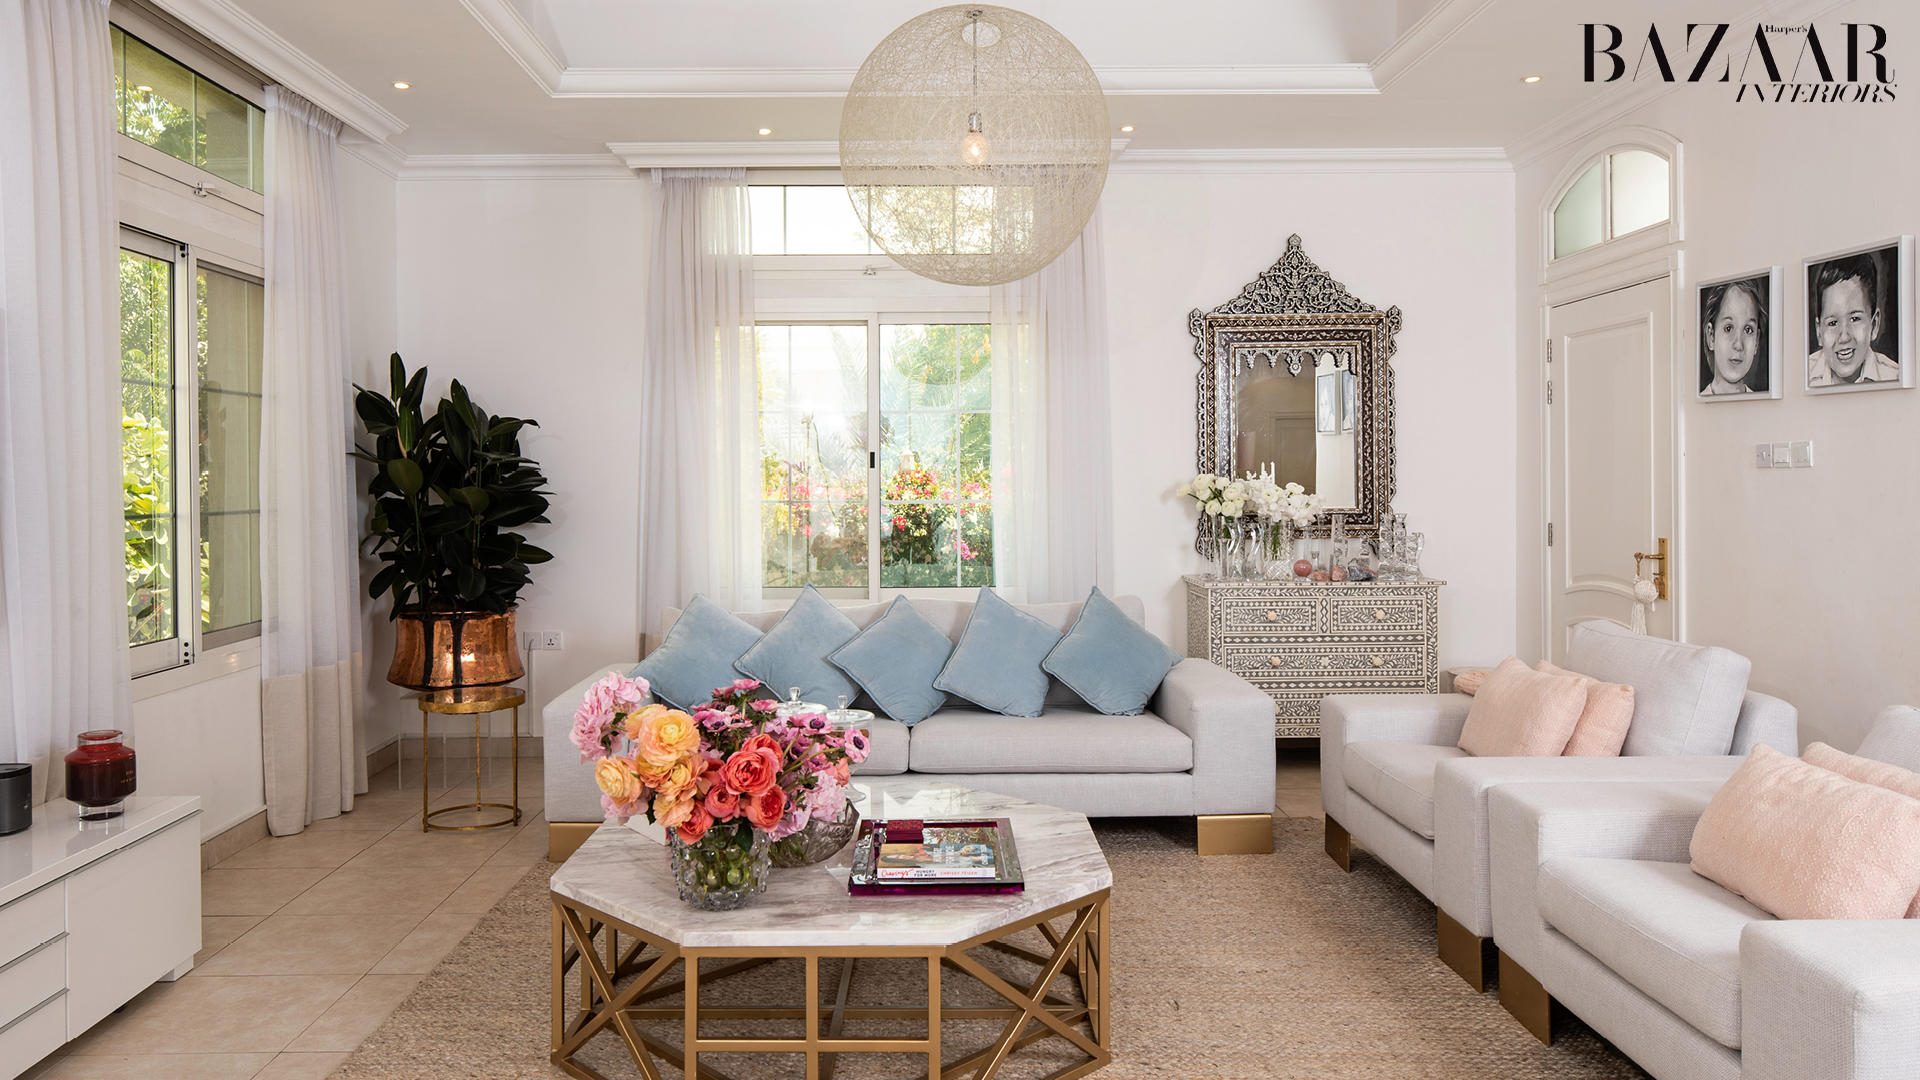 We Can't Get Enough Of This Stunning Flower-Filled Home In Dubai